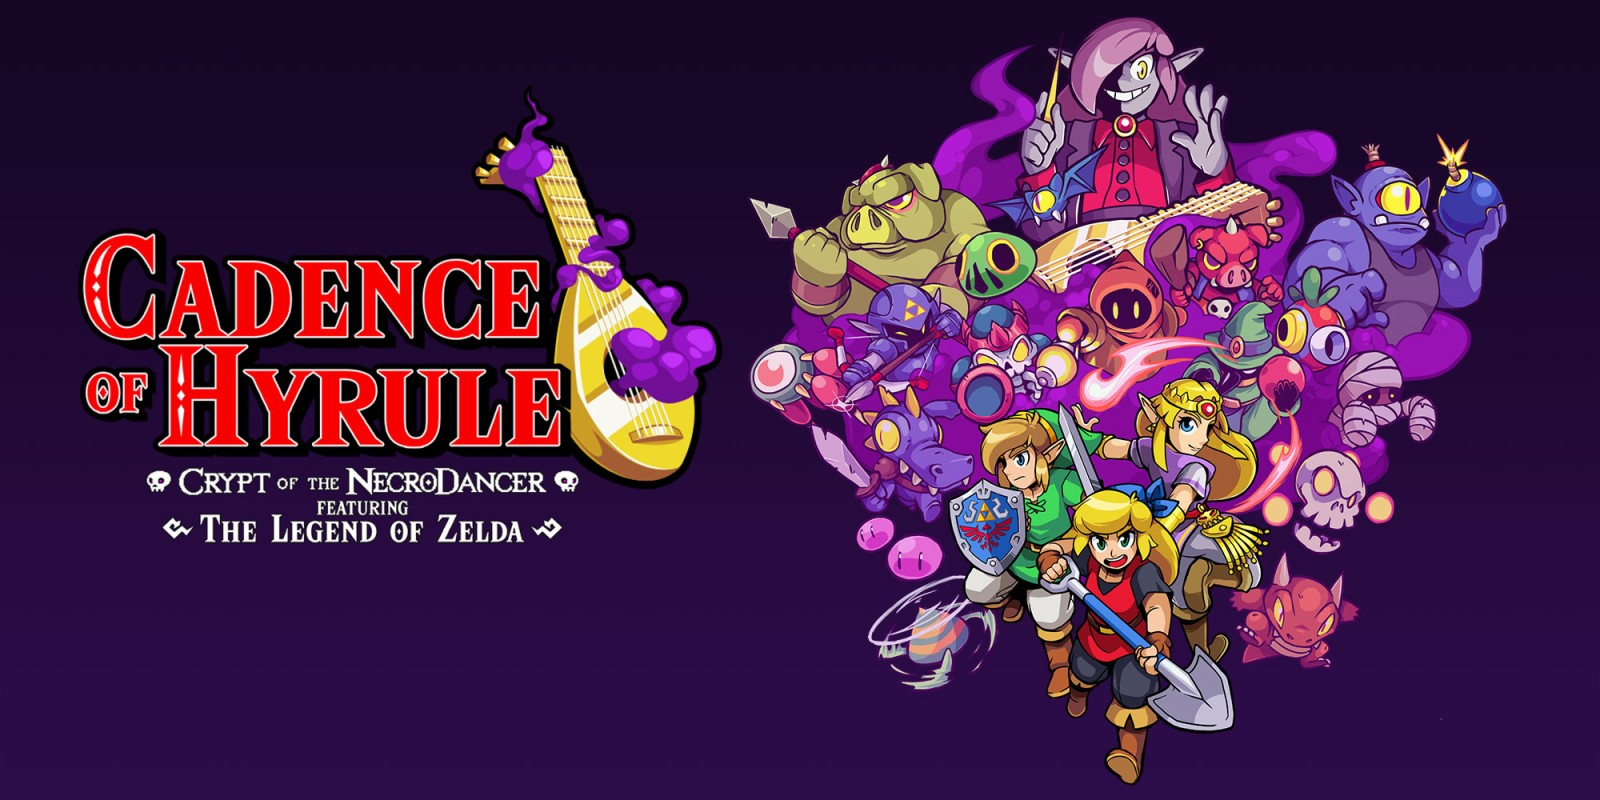 Game completion 2019 #17 – Cadence of Hyrule: Crypt of the NecroDancer Featuring The Legend of Zelda